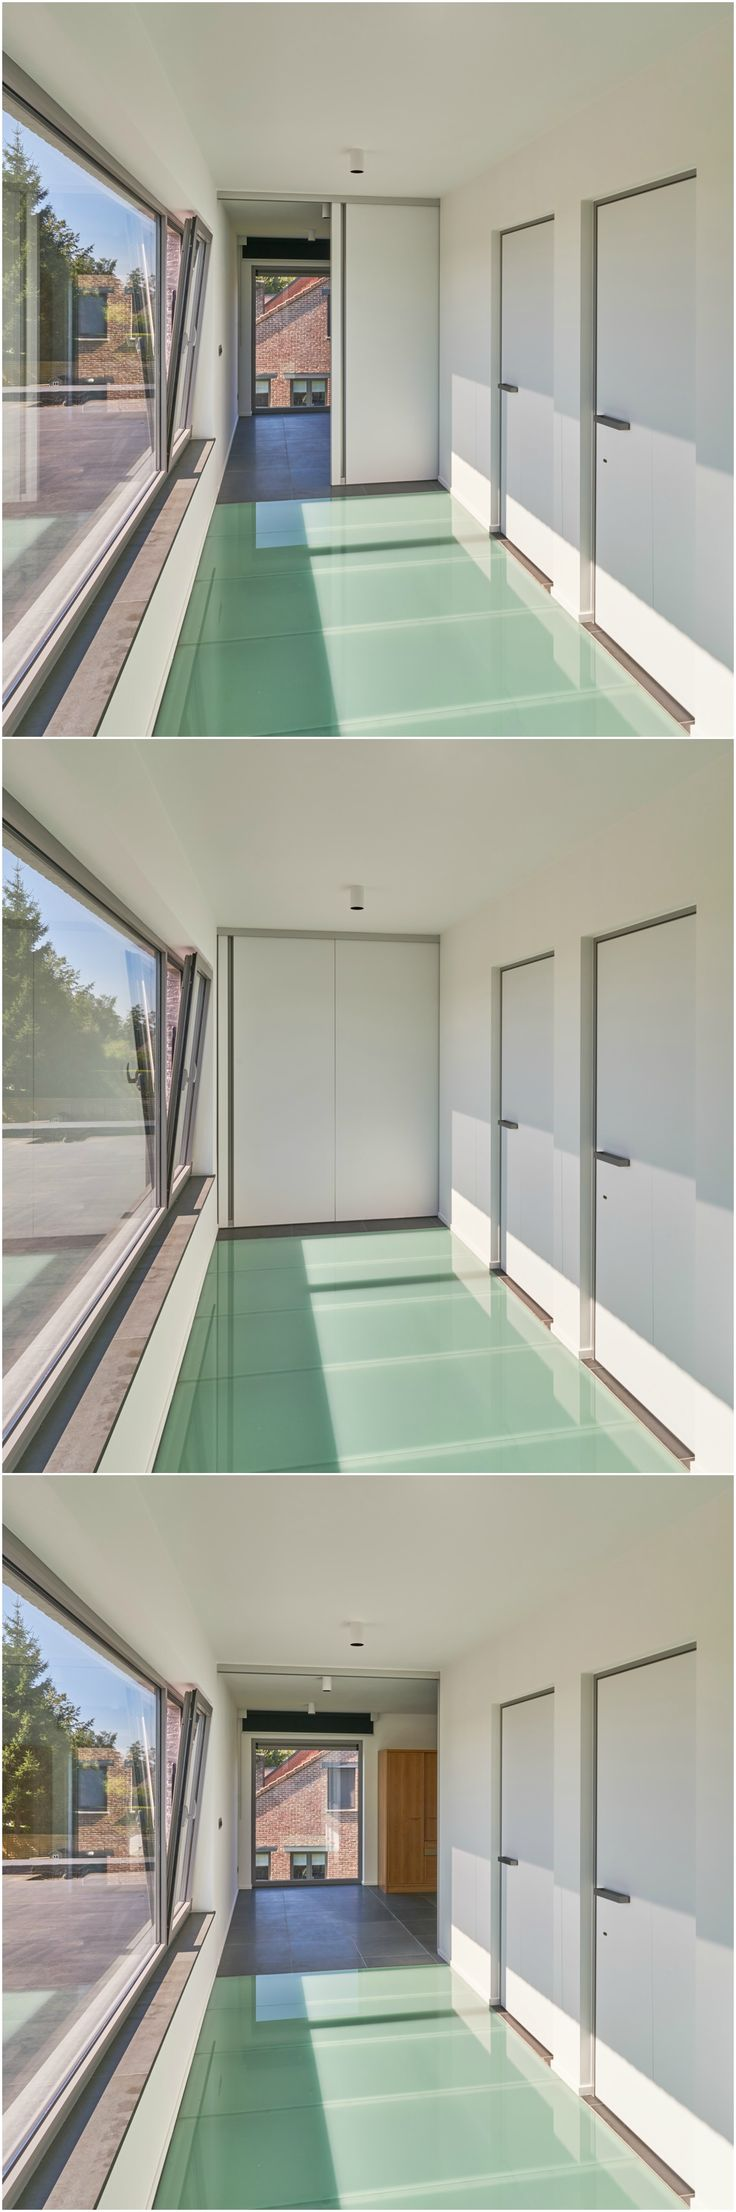 Modern interior sliding door - Modern Interior Sliding Door With 2 Panels Magnetically Attached To Each Other With A Vertical Built In Handle Everything Is Suspended To The Ceiling